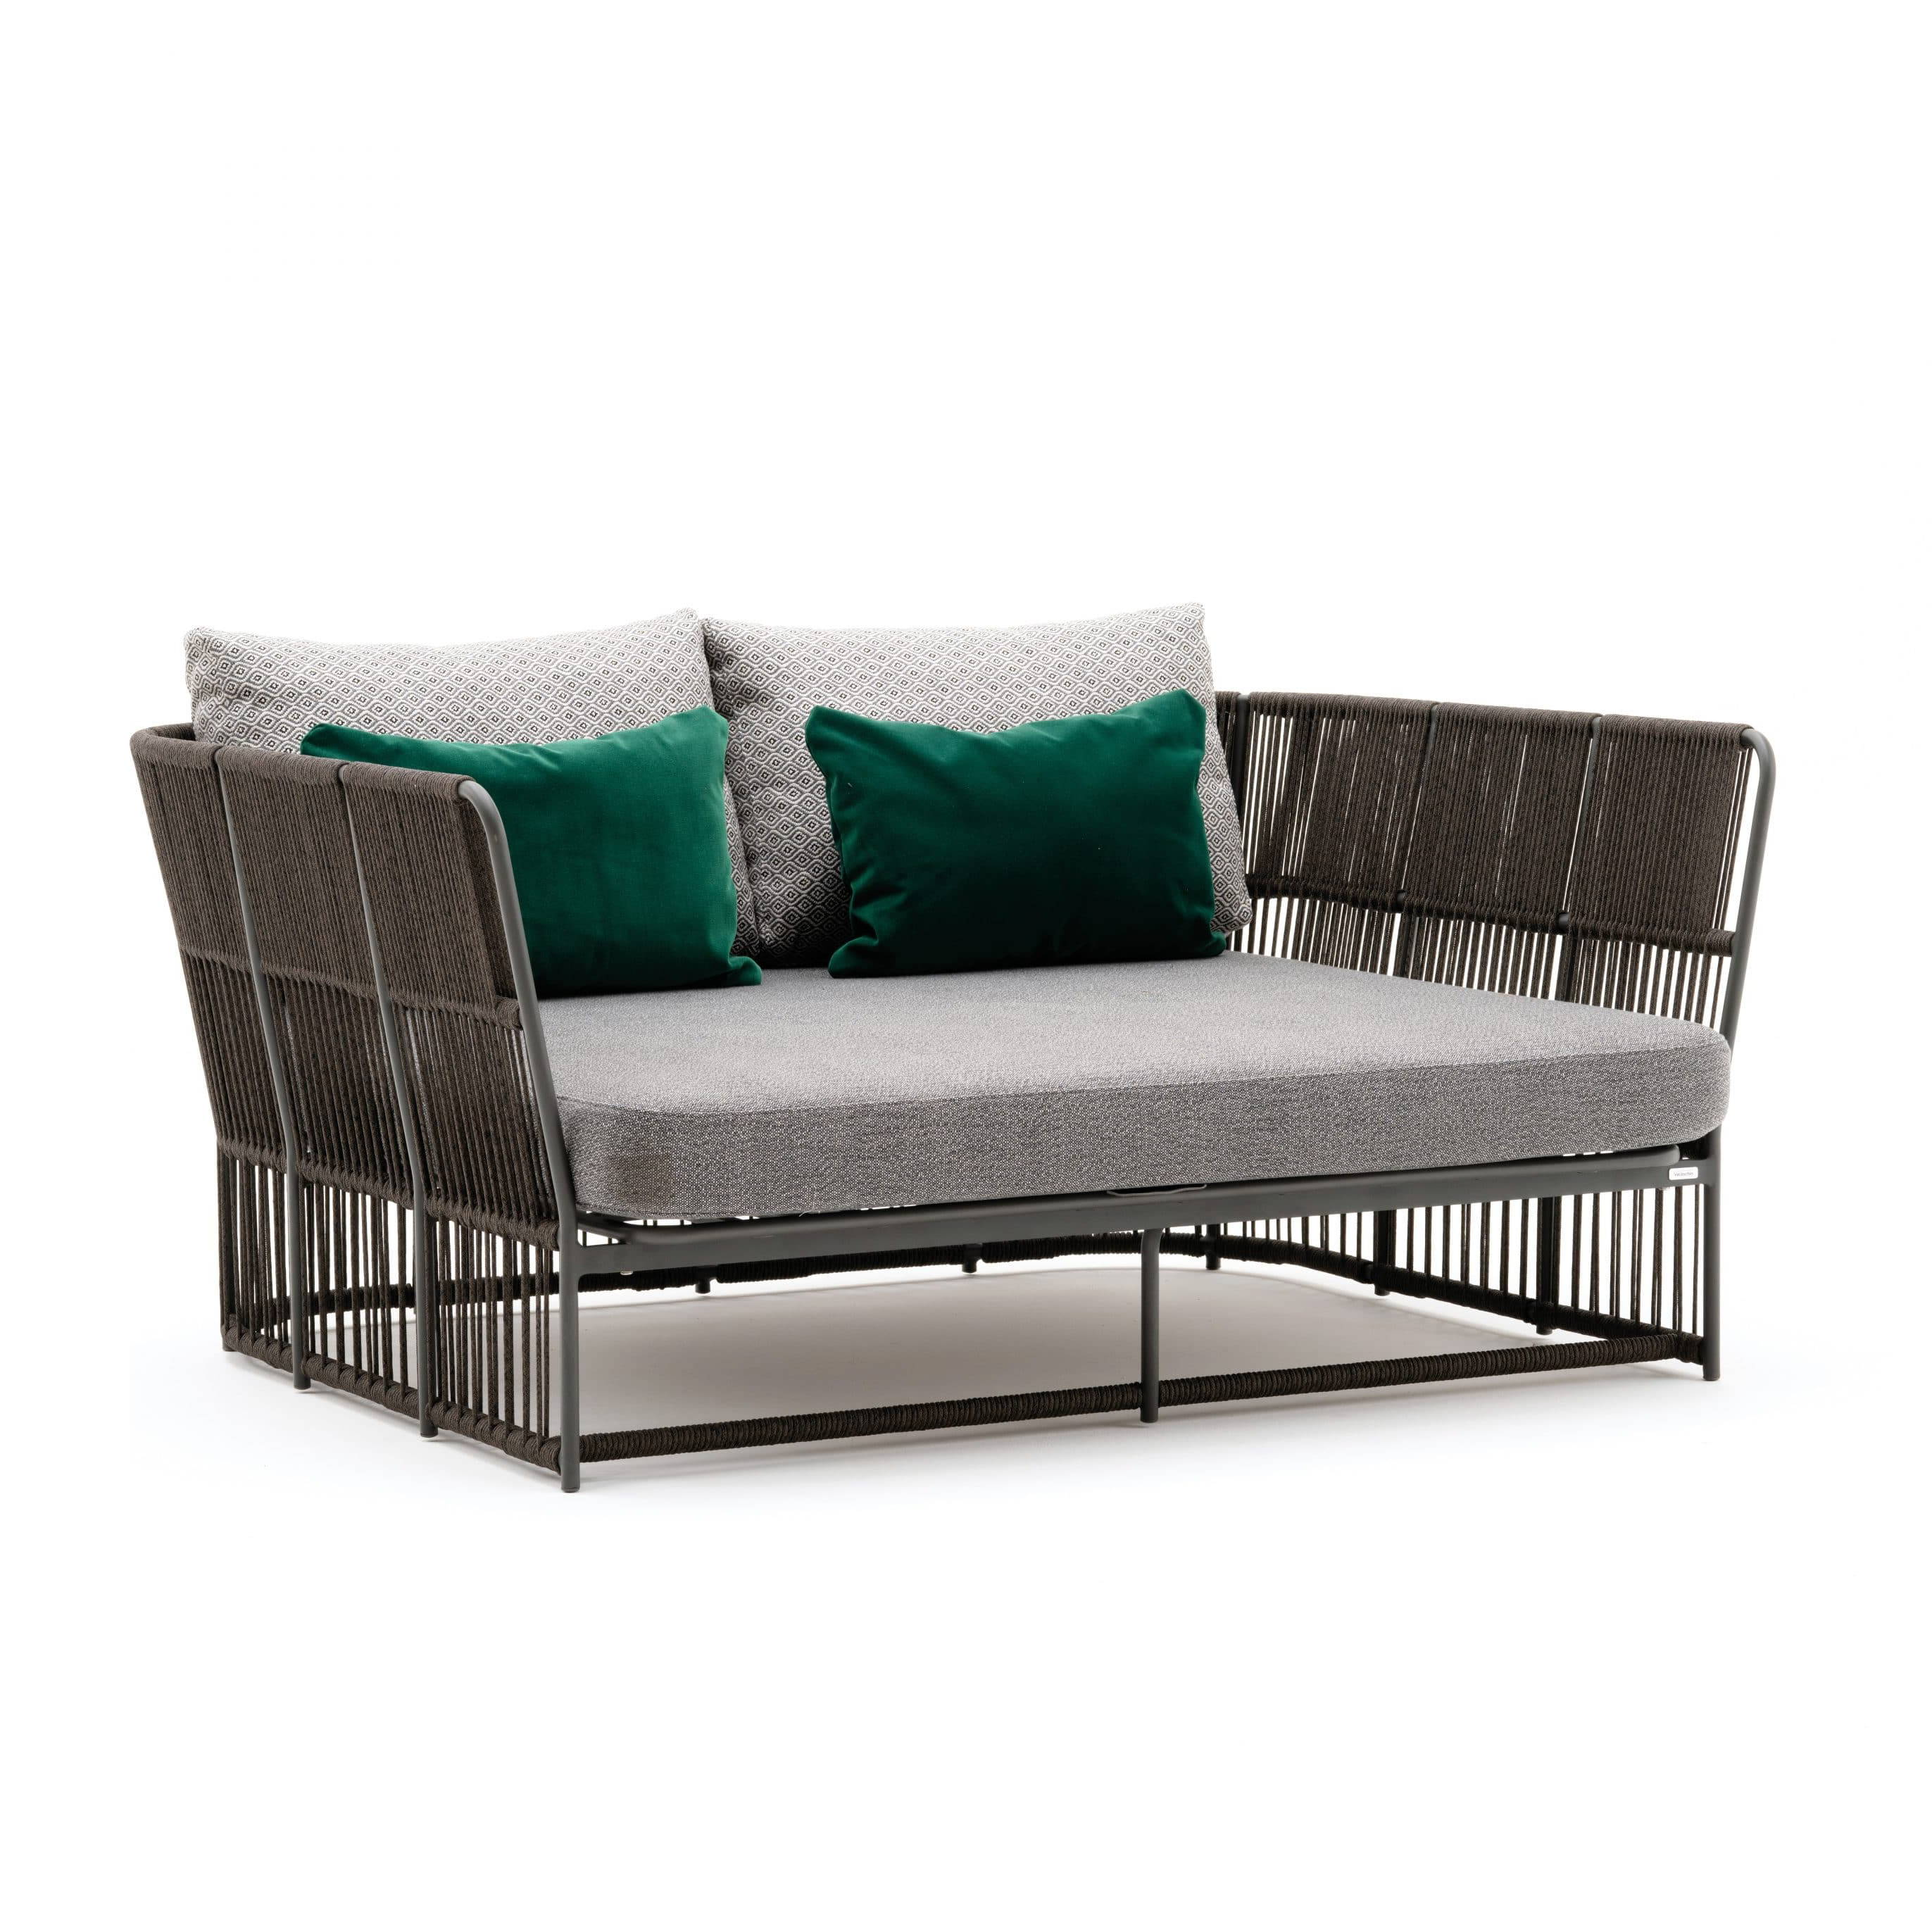 Tibidabo Compact Daybed